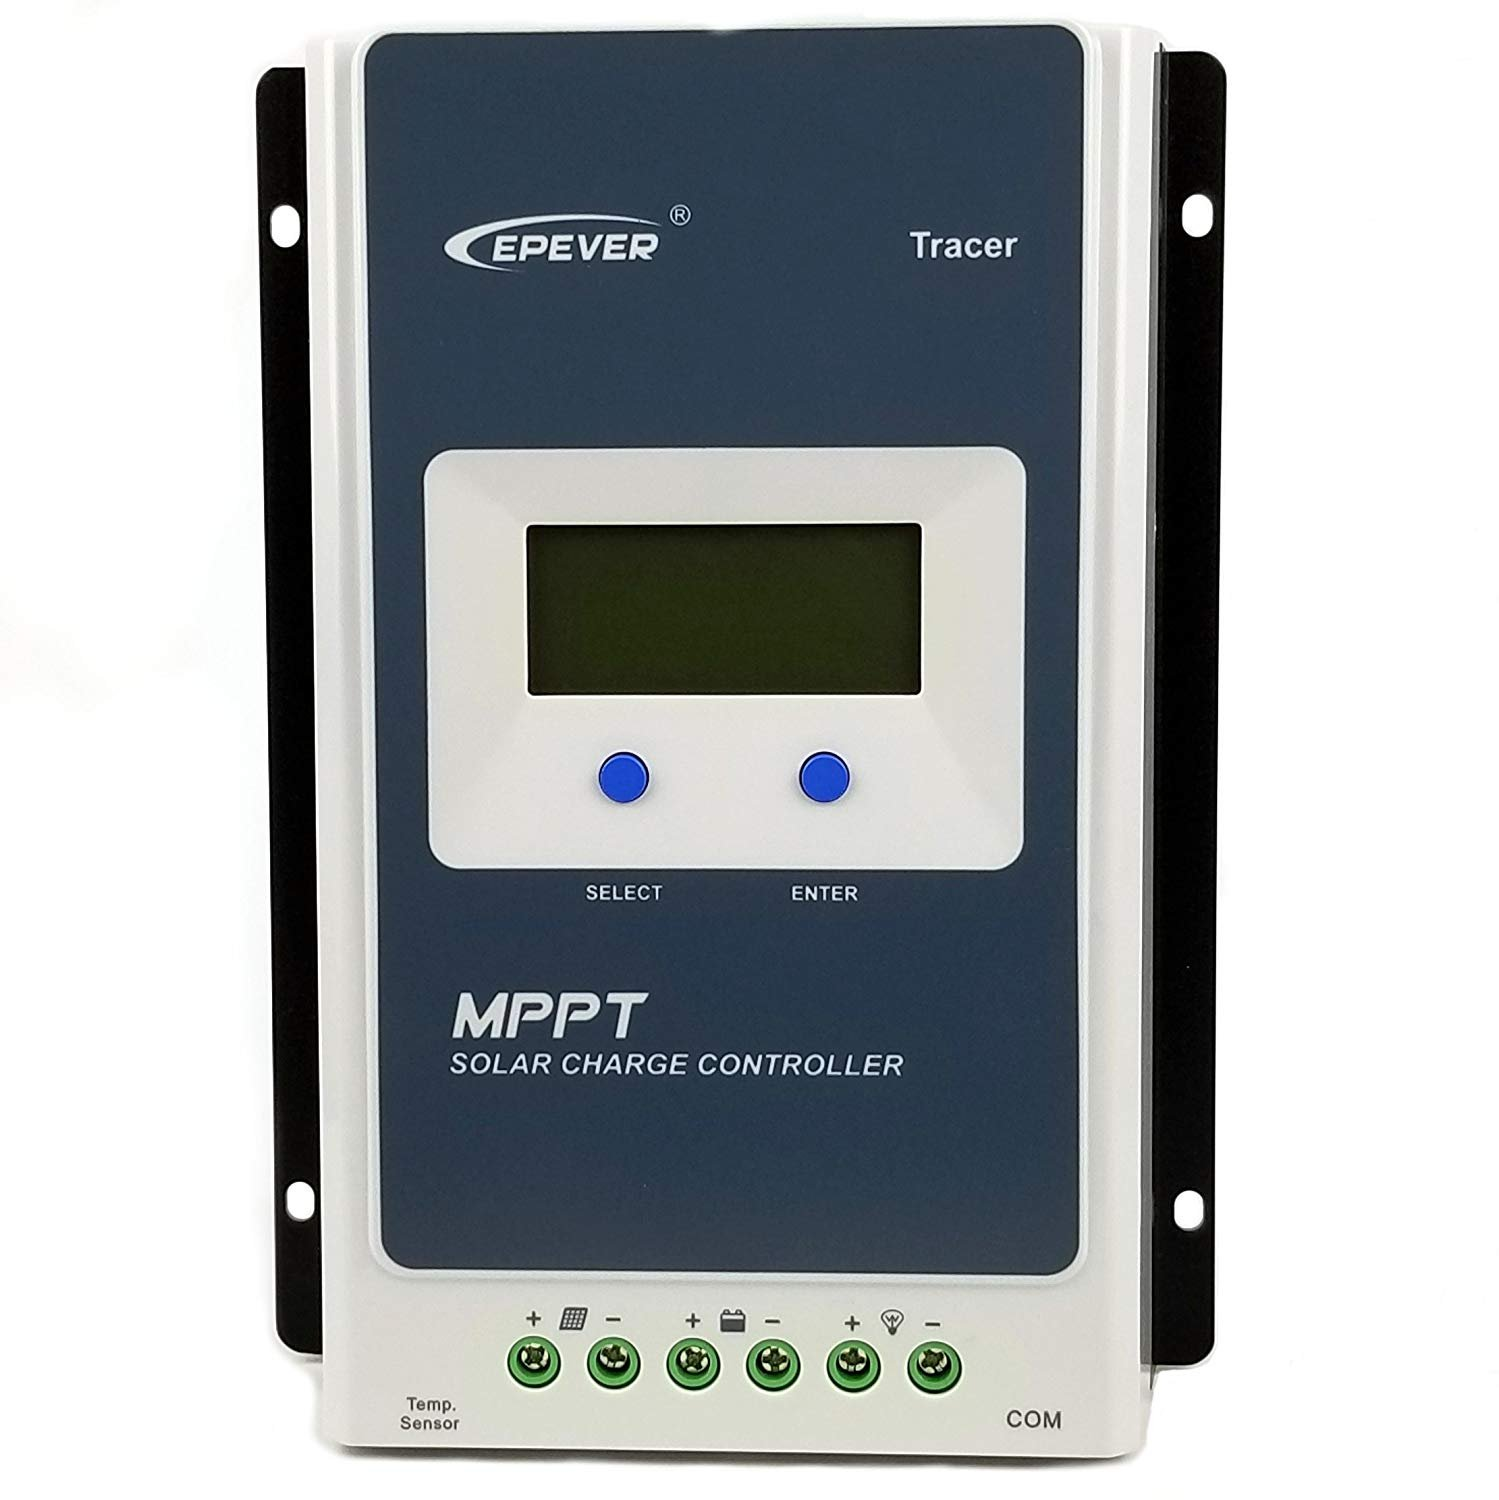 EPEVER MPPT Solar Charge Controller Tracer A Solar Controller+ Remote Meter MT-50 Solar Charge With LCD Display for Solar Battery Charging (30A+MT50 +RTS)